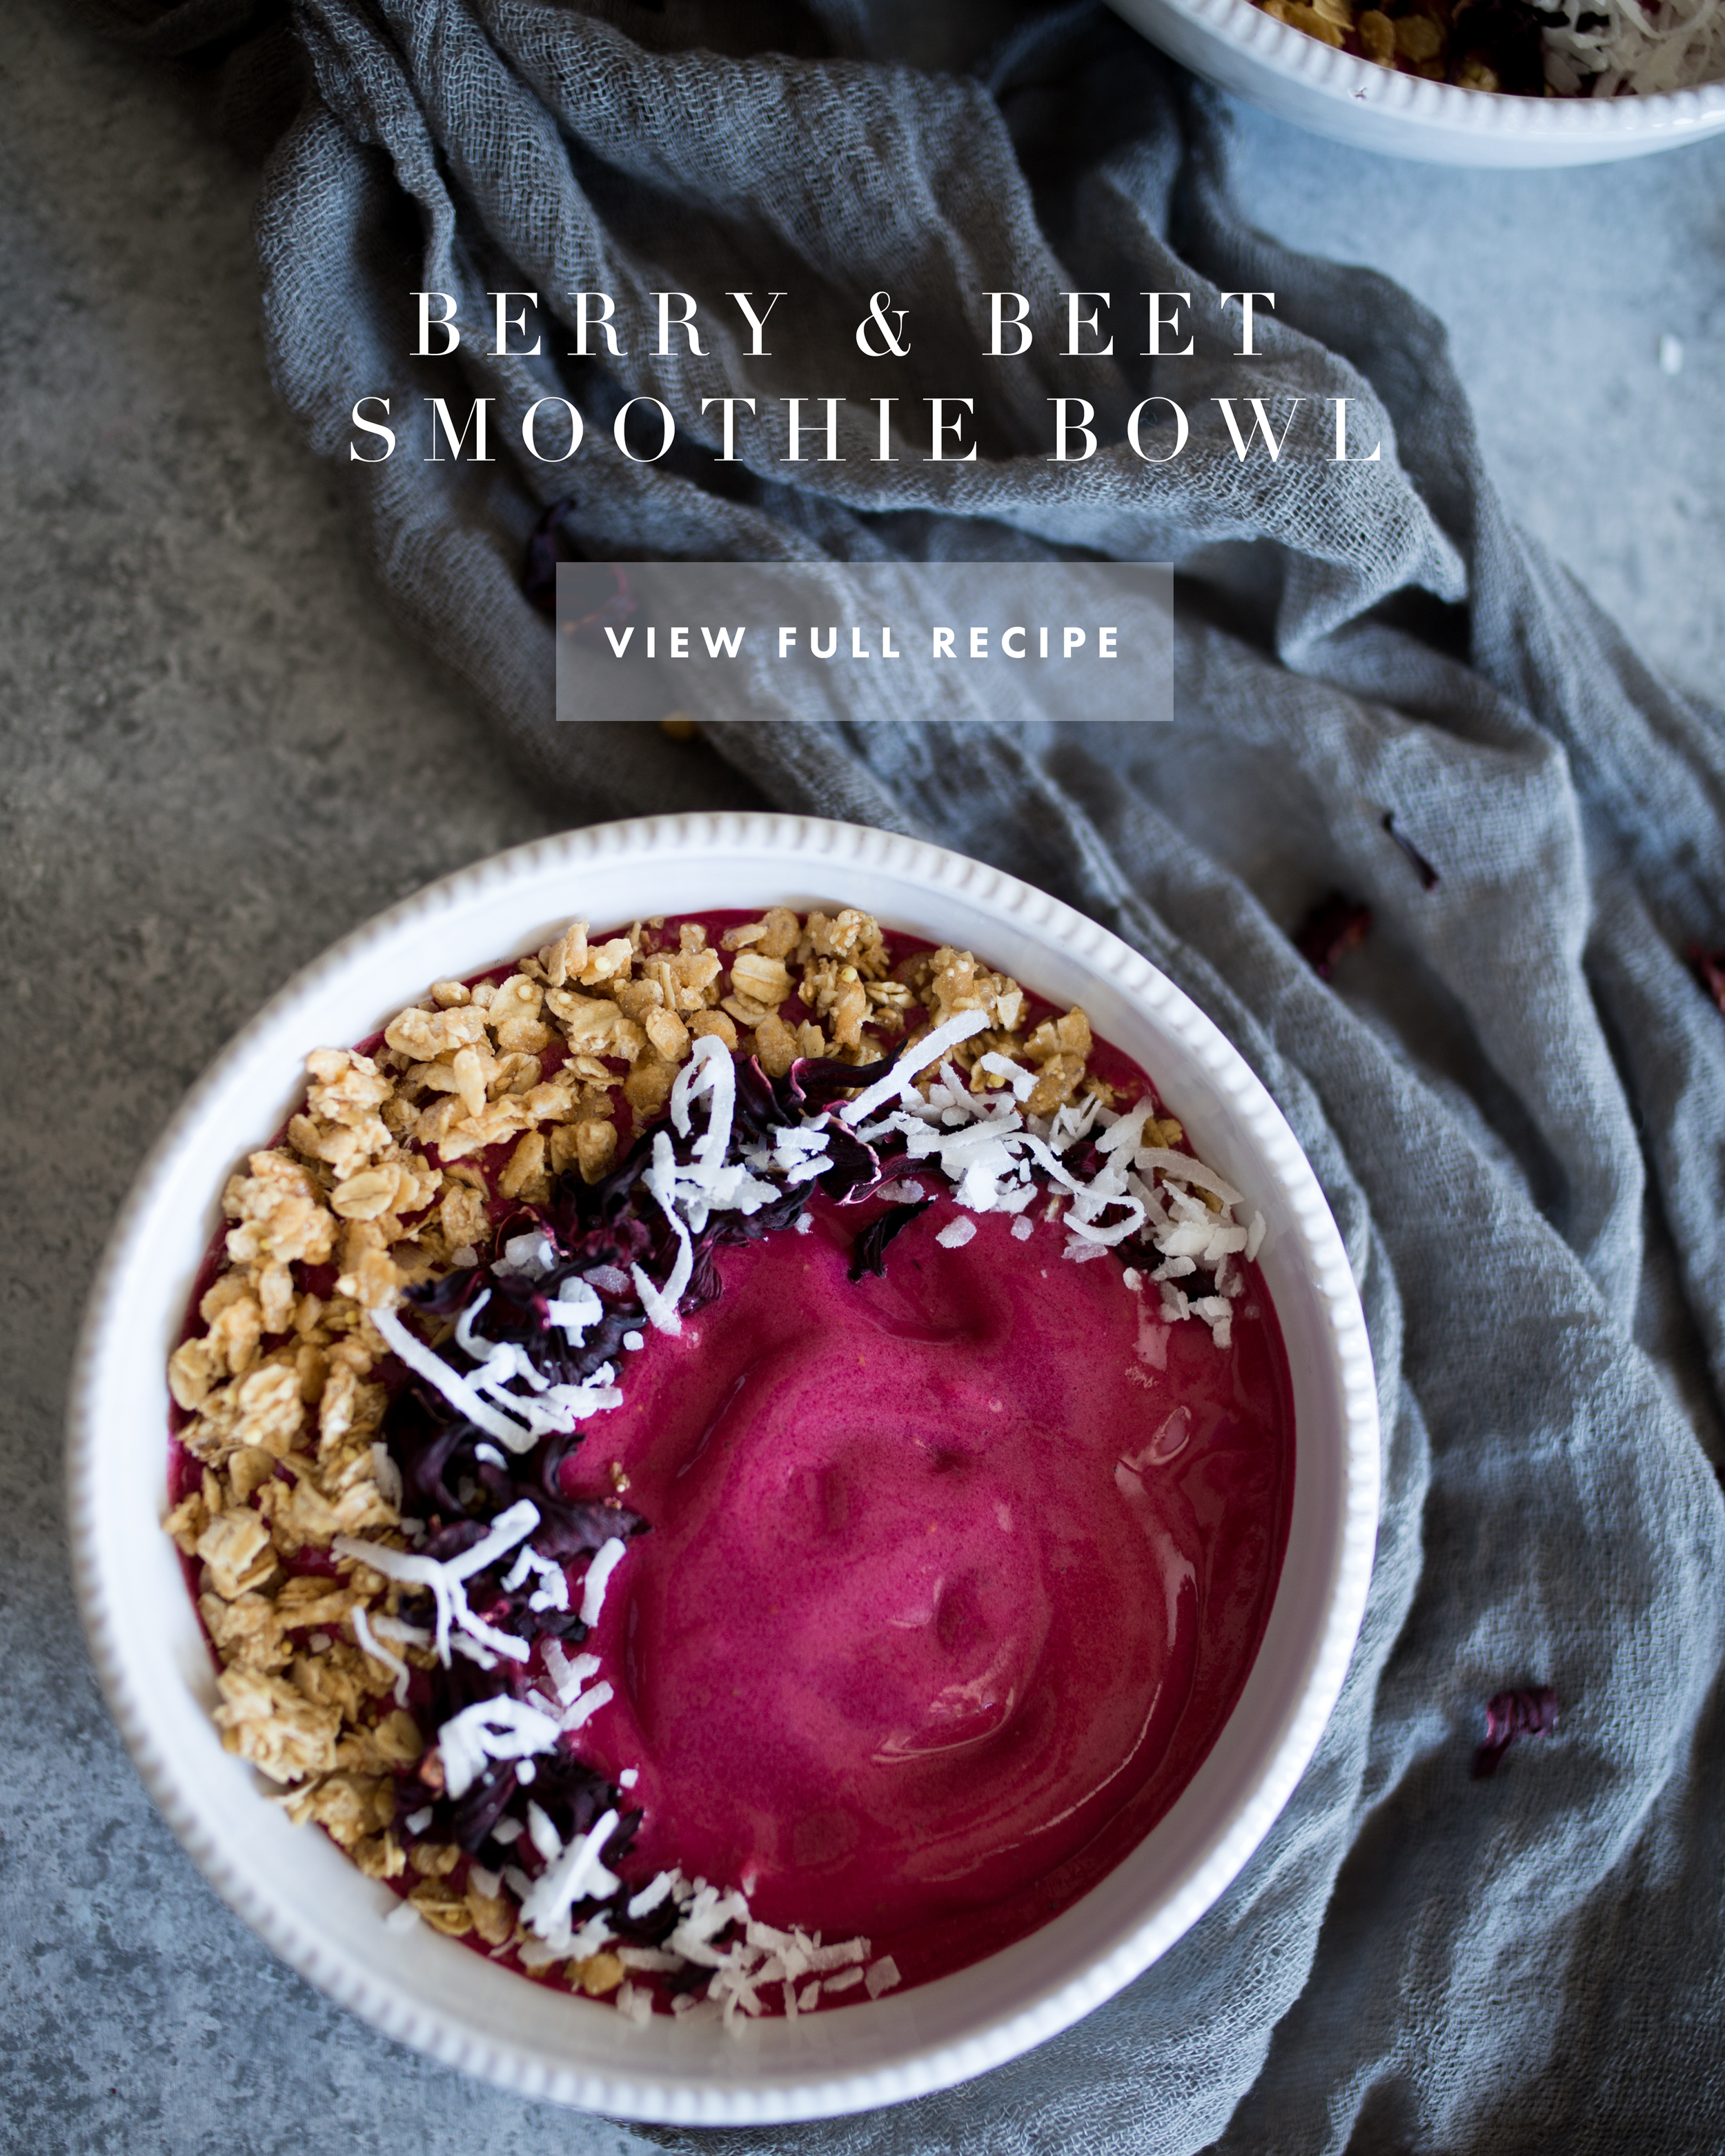 Berry & Beet Smoothie Bowl | Jennifer Diaz | Healthy Breakfast | How to Make a Smoothie Bowl | Pink Smoothie Bowl | High Protein Breakfast | High Fiber Meal